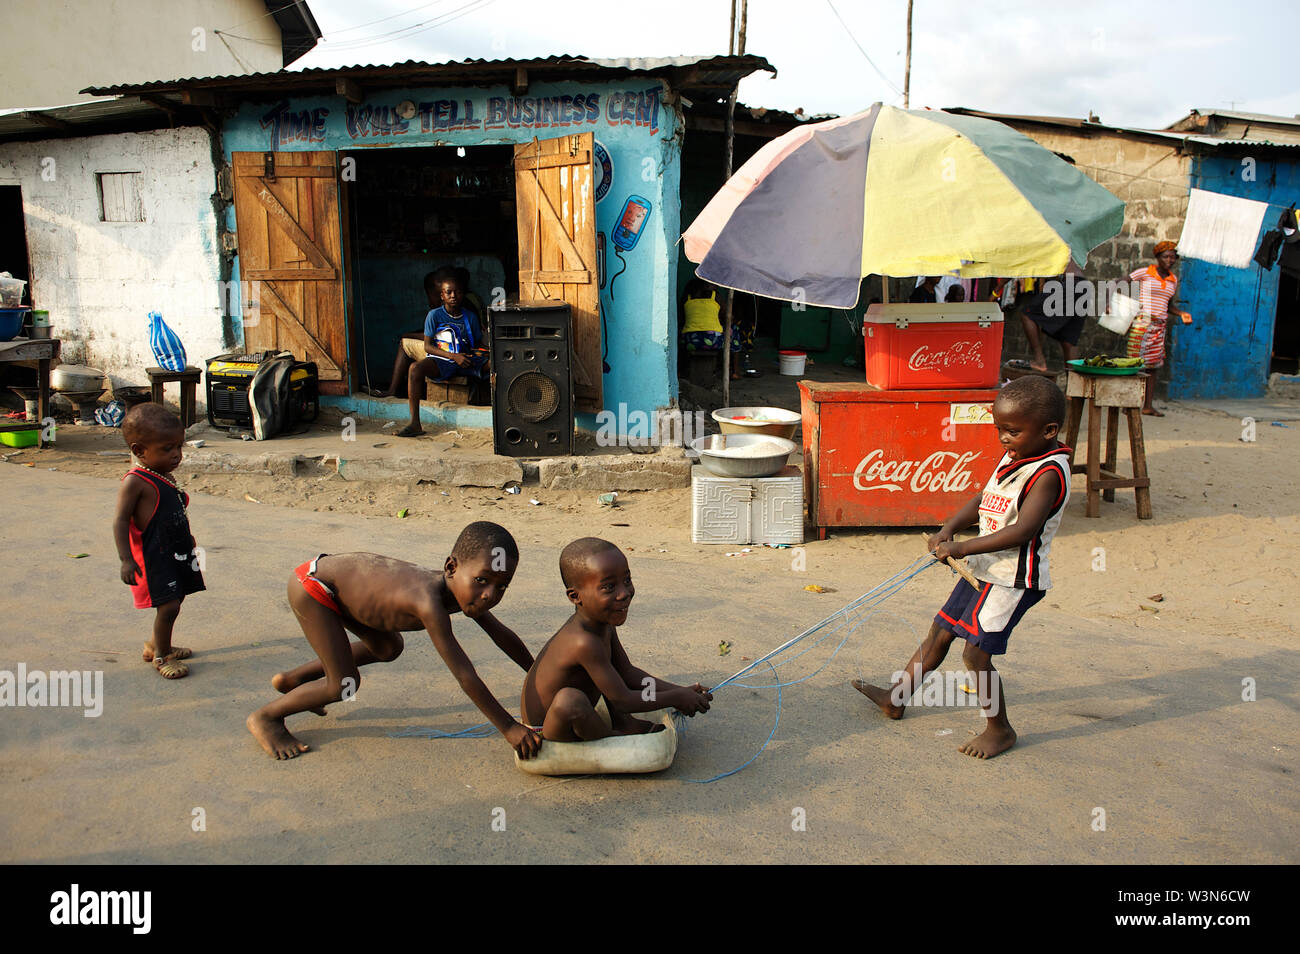 Children play in the West Point, which houses over 70,000 people. It is known to be one of the most dangerous slums in Monrovia. Water and sanitation condition in the slum is certainly less that adequate. Due to the lack of sanitary latrines, it's is common for many residents of the West Point to defecate in open near the beach. It is also common for people to dispose of garbage on the beach that continues to create health hazards for its residents.     In 2012, Liberia is still recovering from a ruinous 14-year civil war that ended in 2003. Although the Government is working to rebuild the co - Stock Image